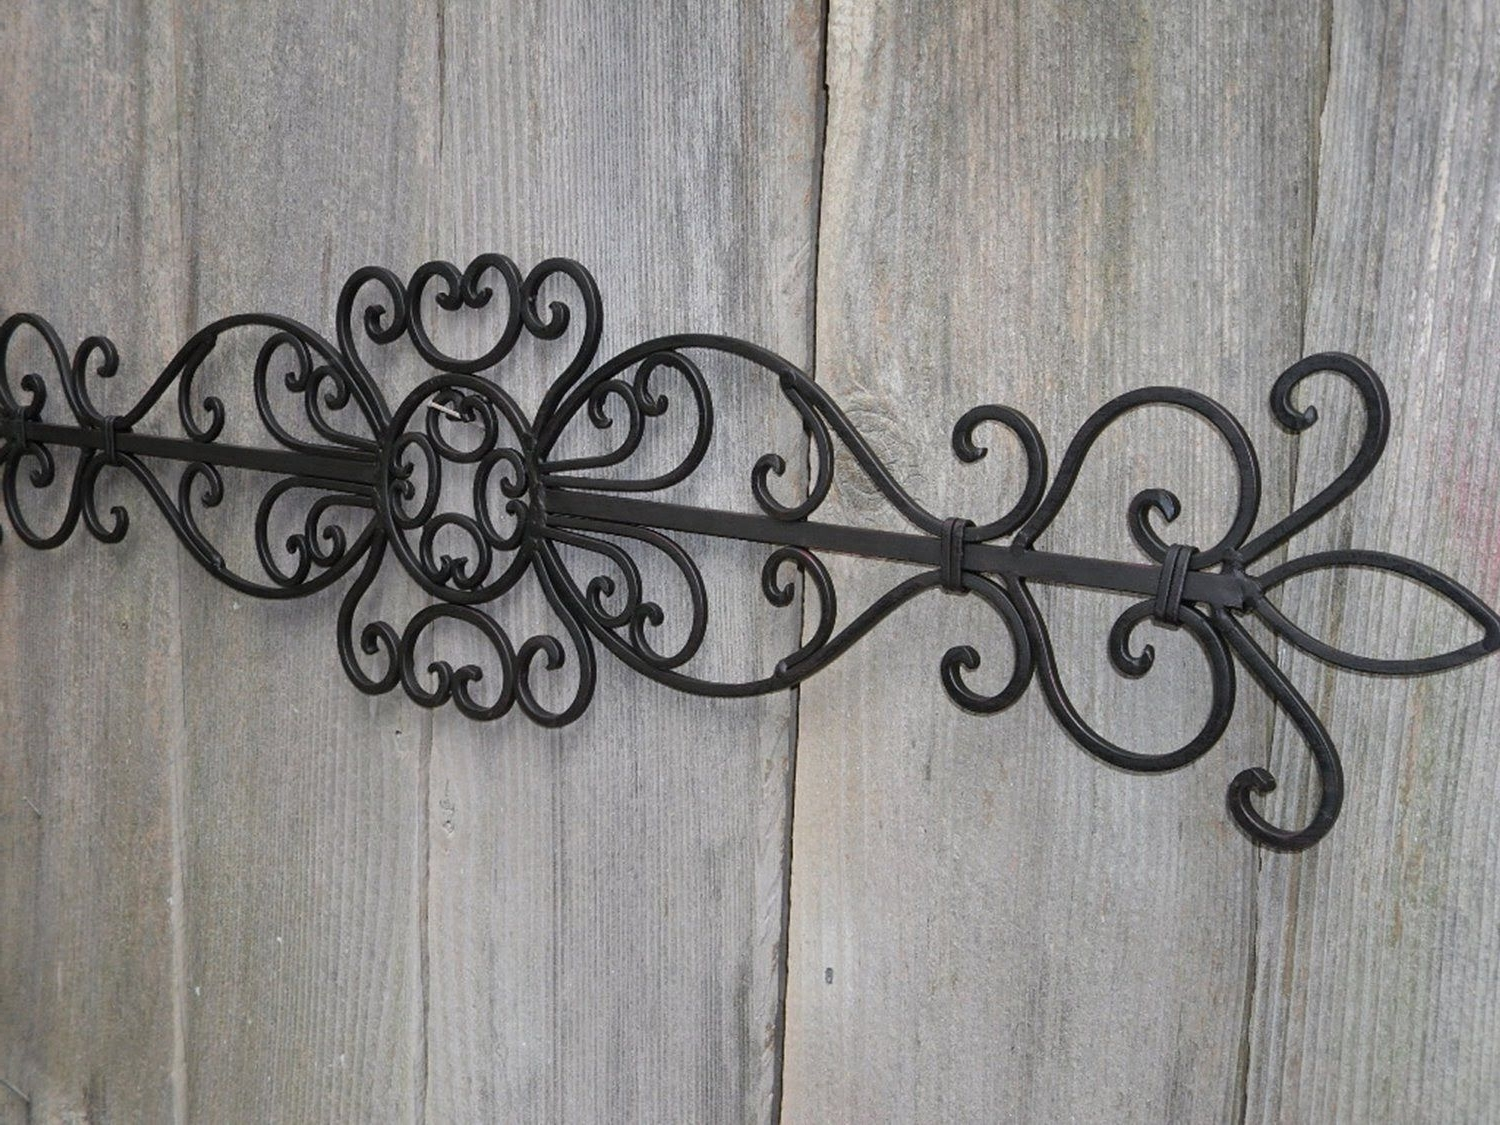 Tuscan Wrought Iron Wall Art Inside Recent Appealing Wall Art Designs Wrought Iron Decor Of Outdoor Concept (View 9 of 15)